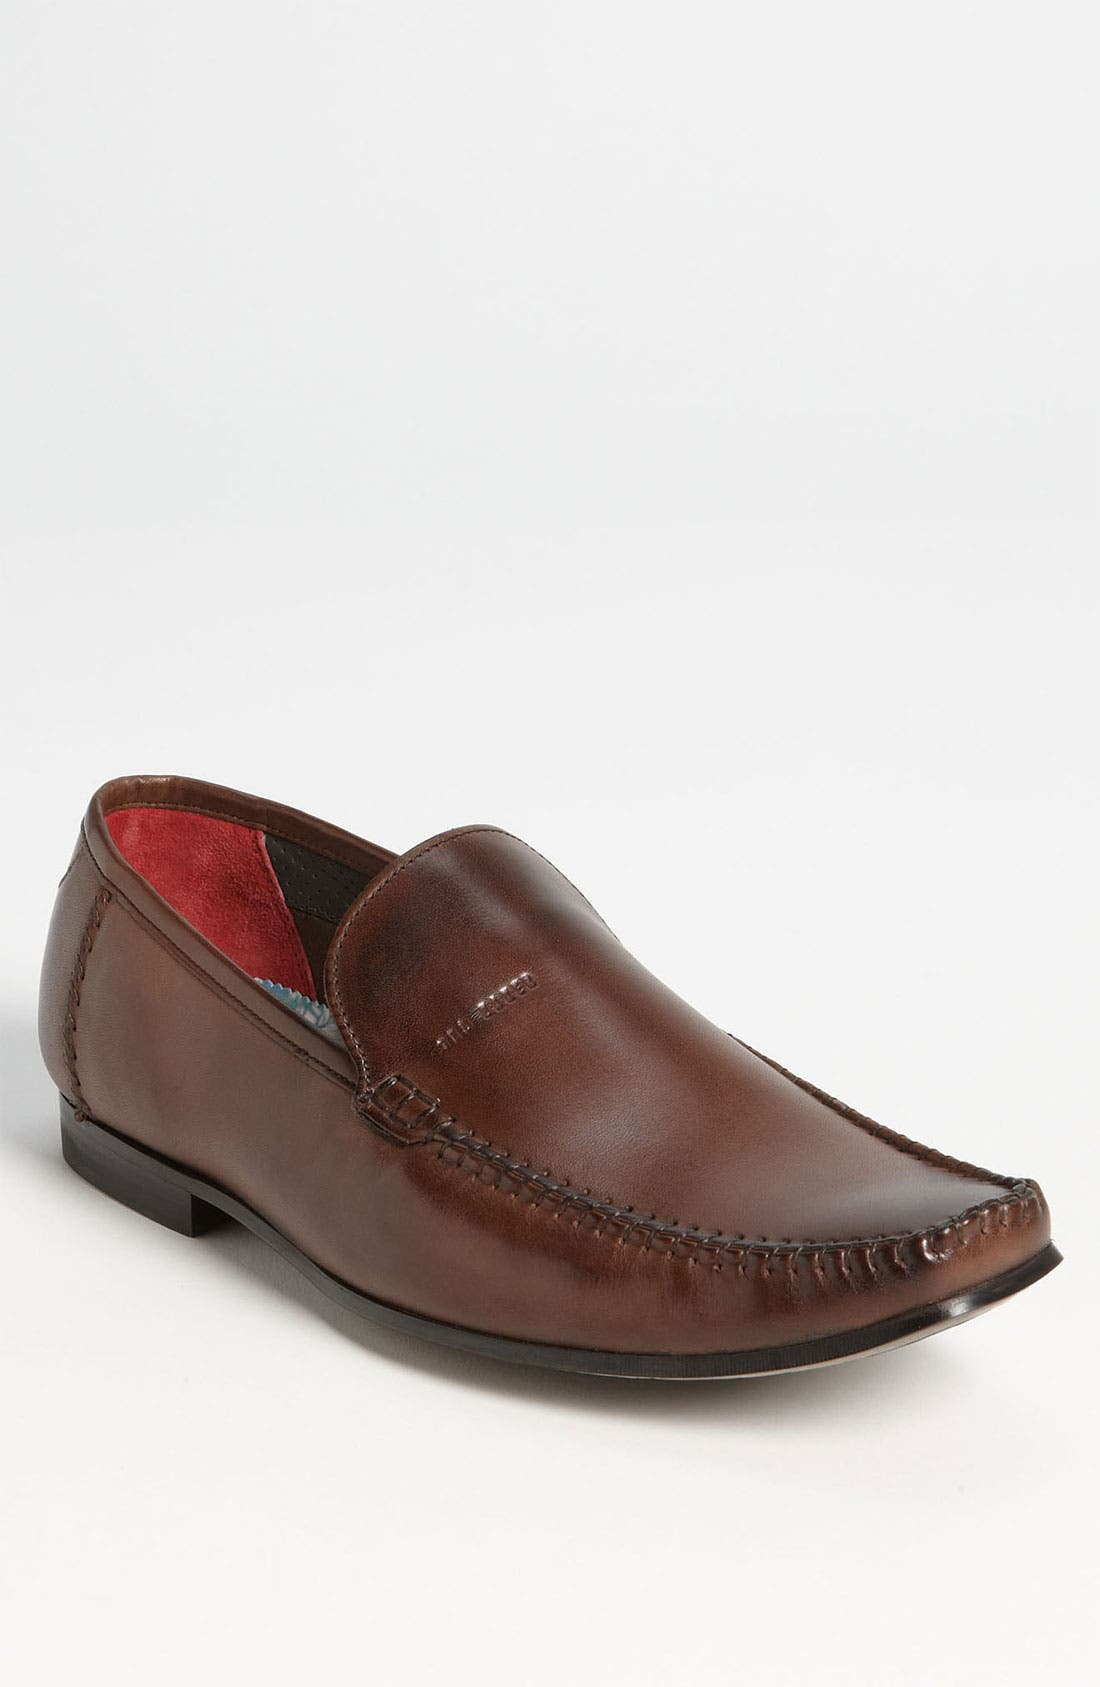 Main Image - Ted Baker London 'Bly' Loafer